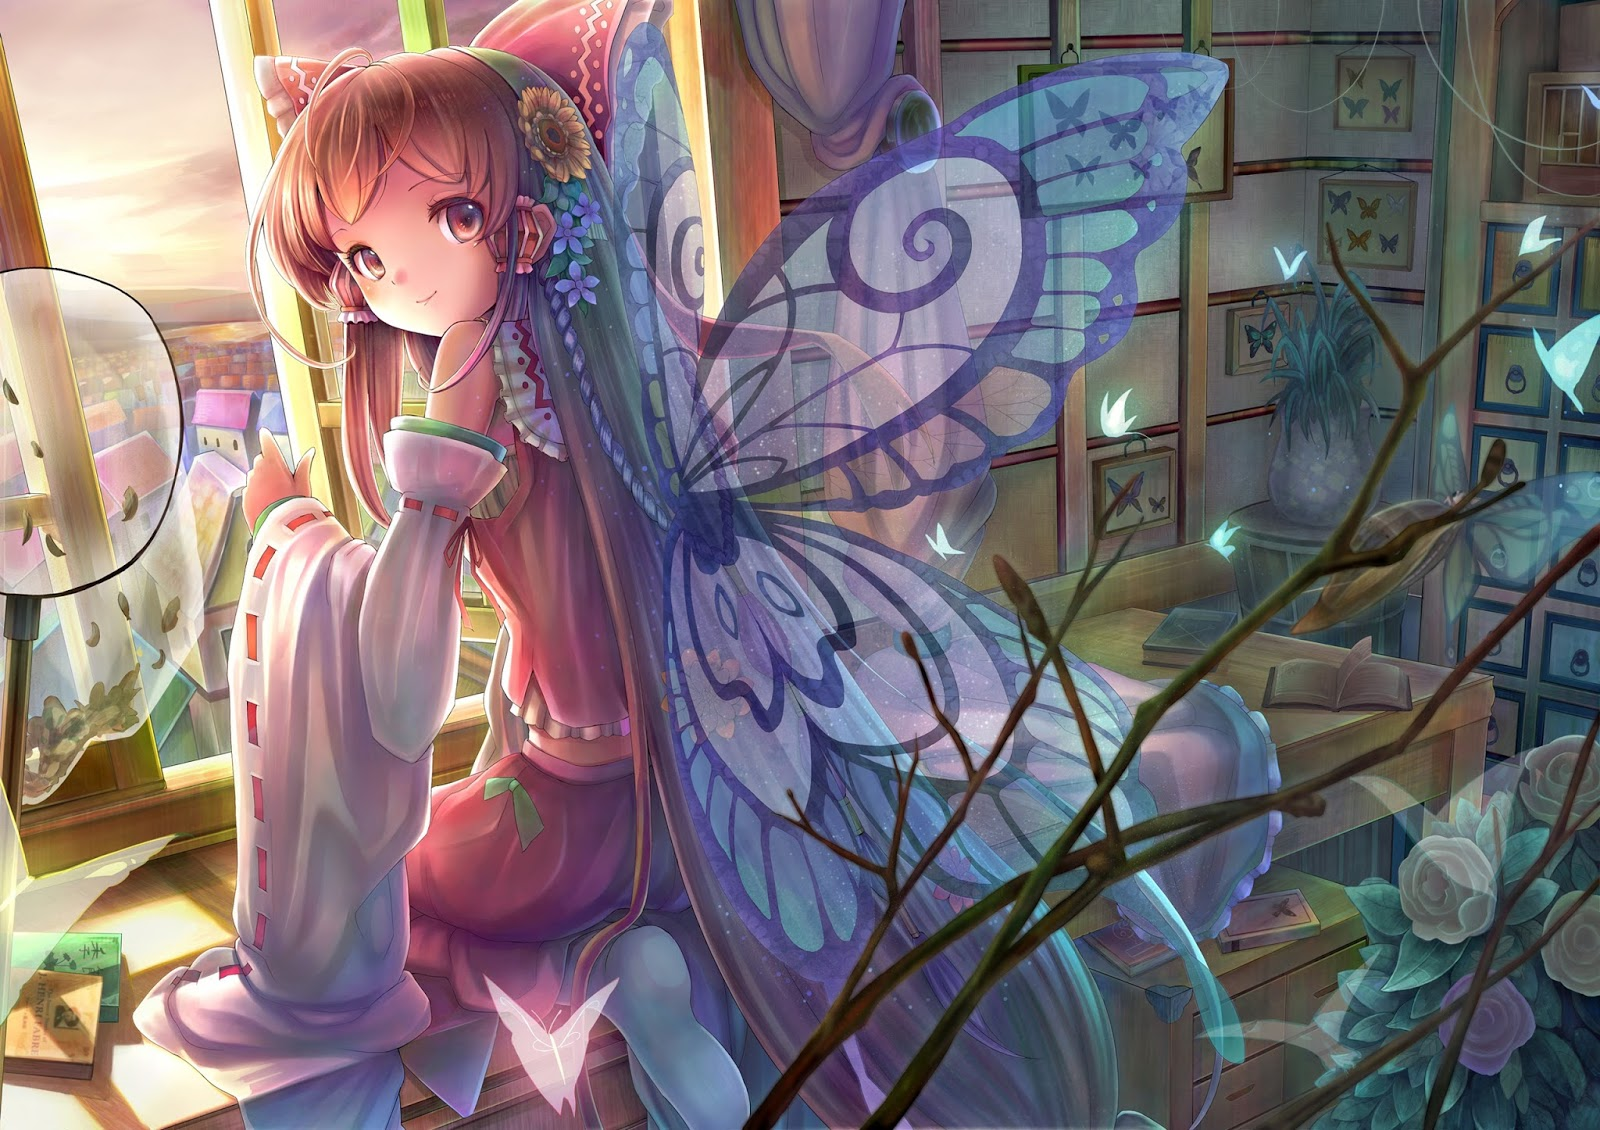 Cute Girl Butterfly Wings Smiling Anime HD Wallpaper Backgrounds Photo ...: www.wallpaper404.com/2013/09/cute-girl-smiling-butterfly-wings-c44...